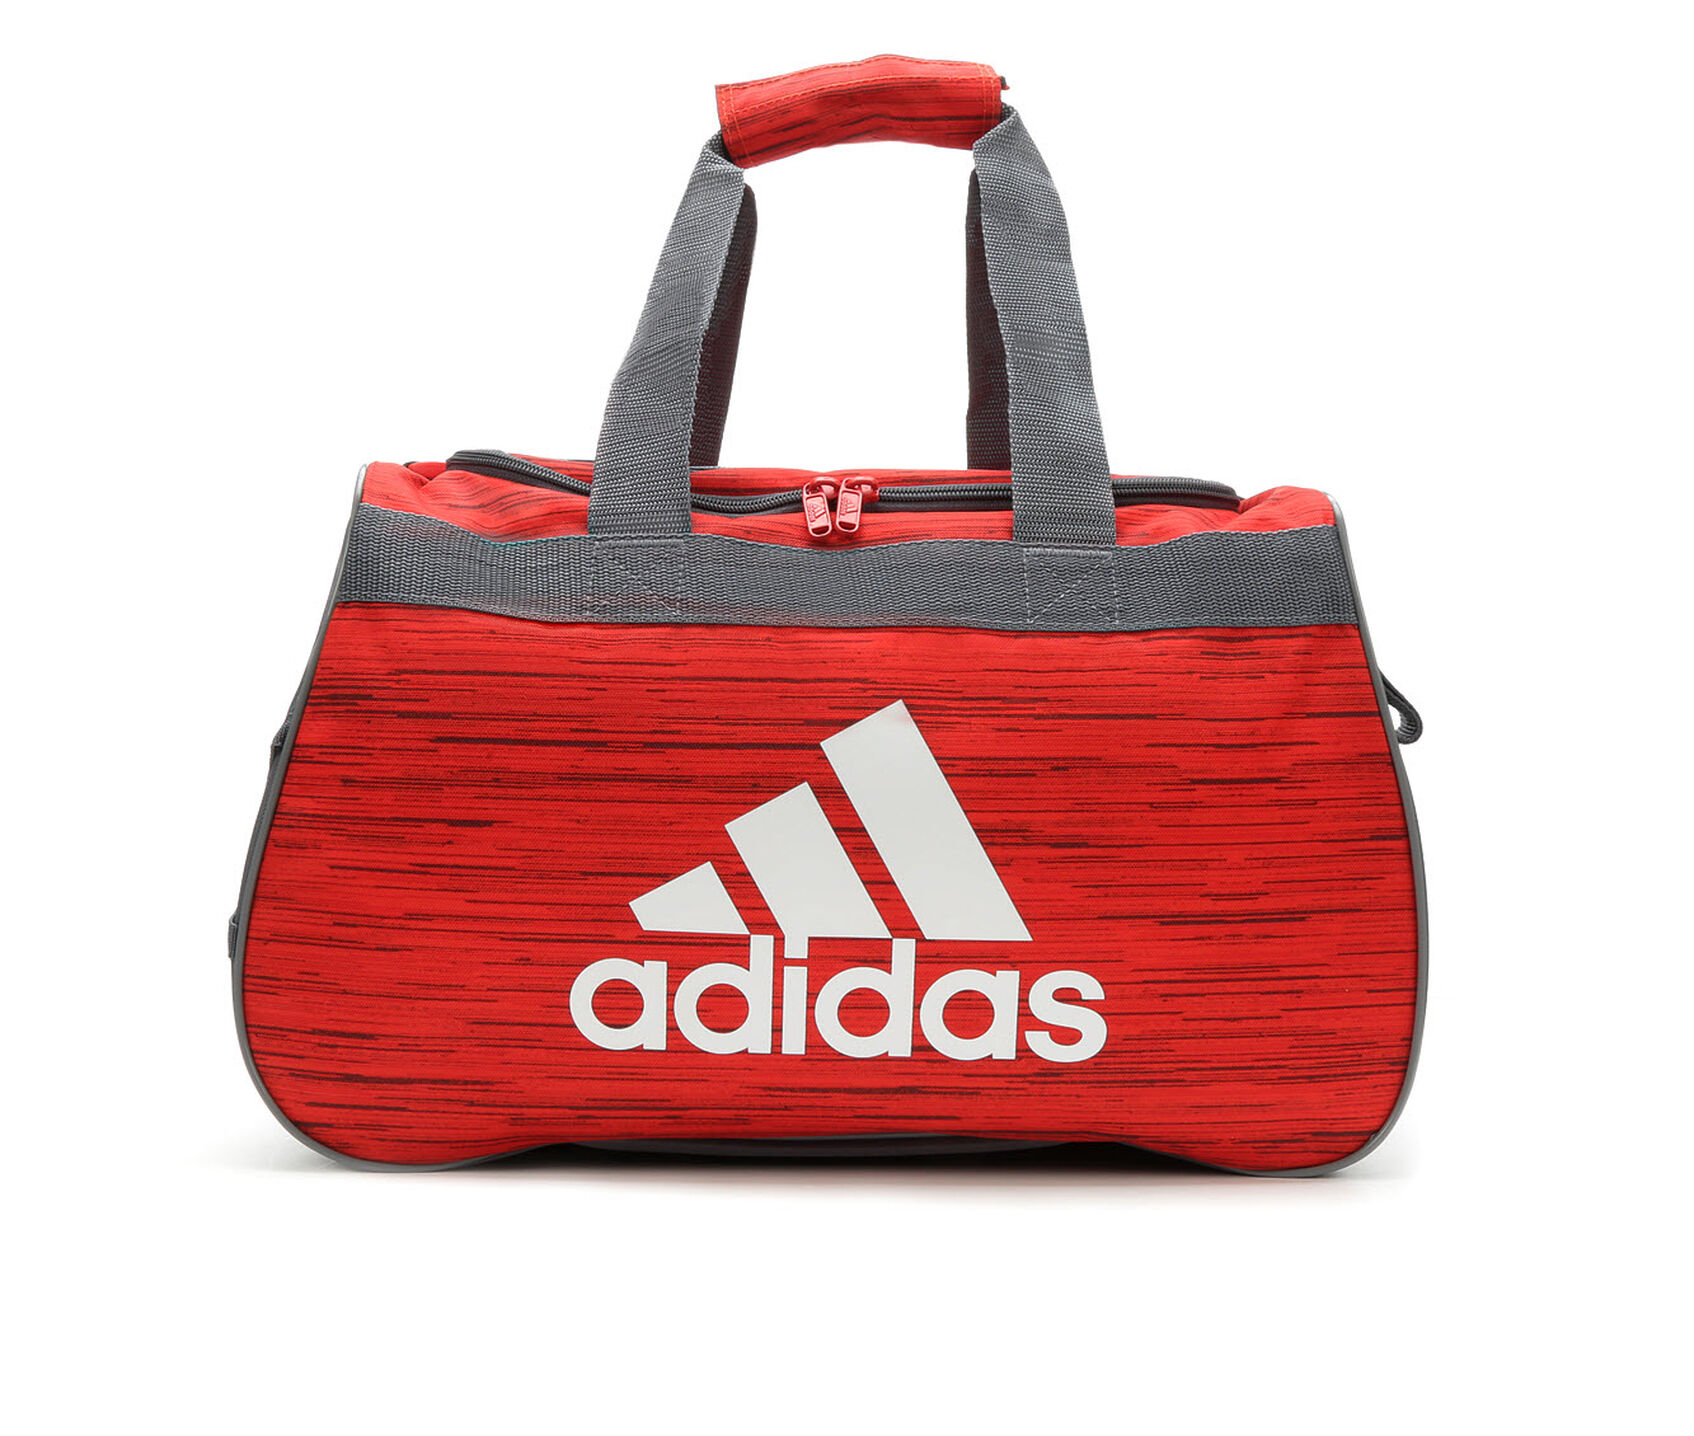 0a1ea036e1 Adidas Diablo Small Duffel Bag. Previous